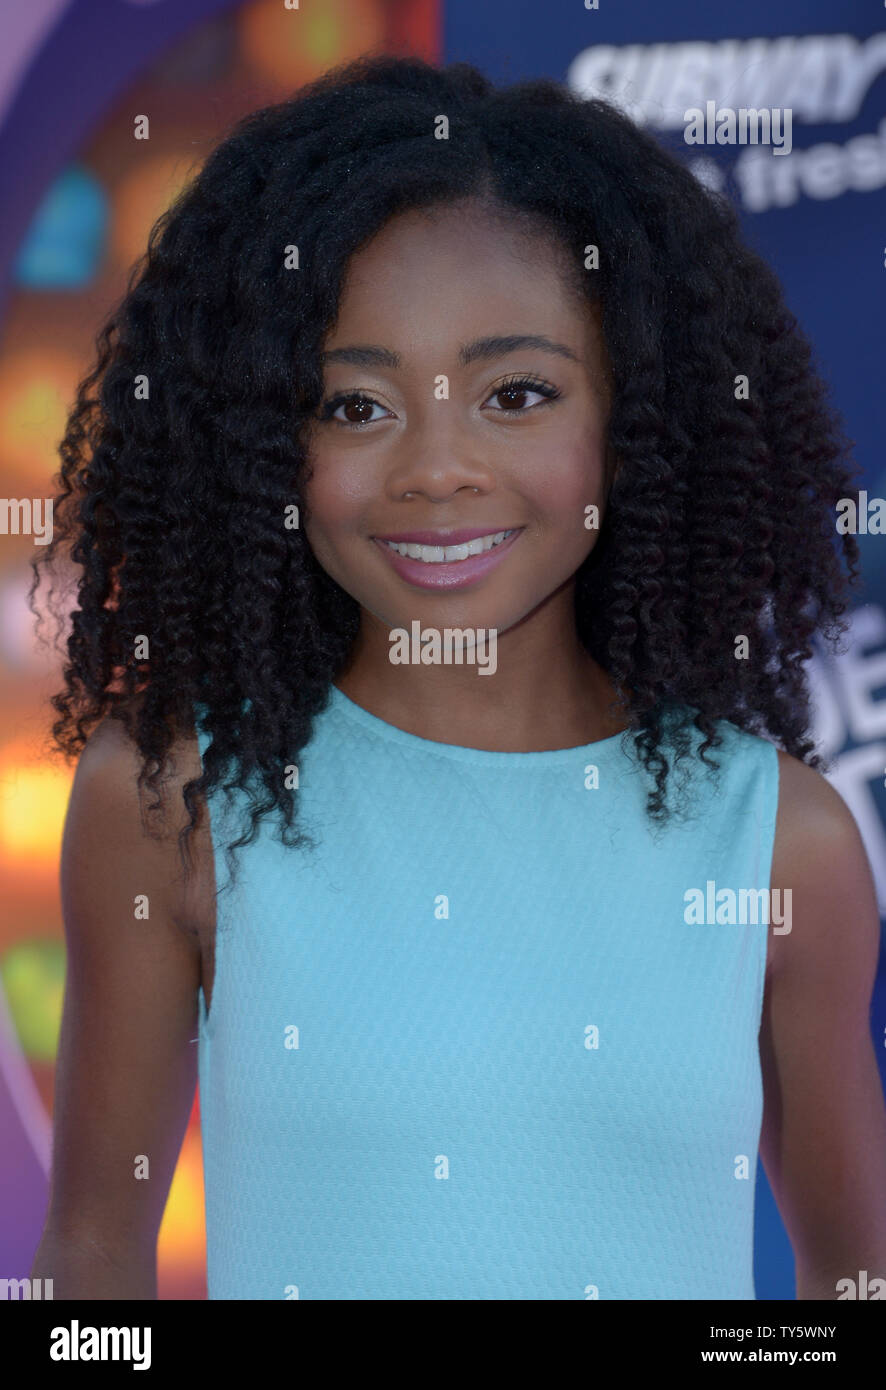 Actress Skai Jackson attends the premiere of the animated